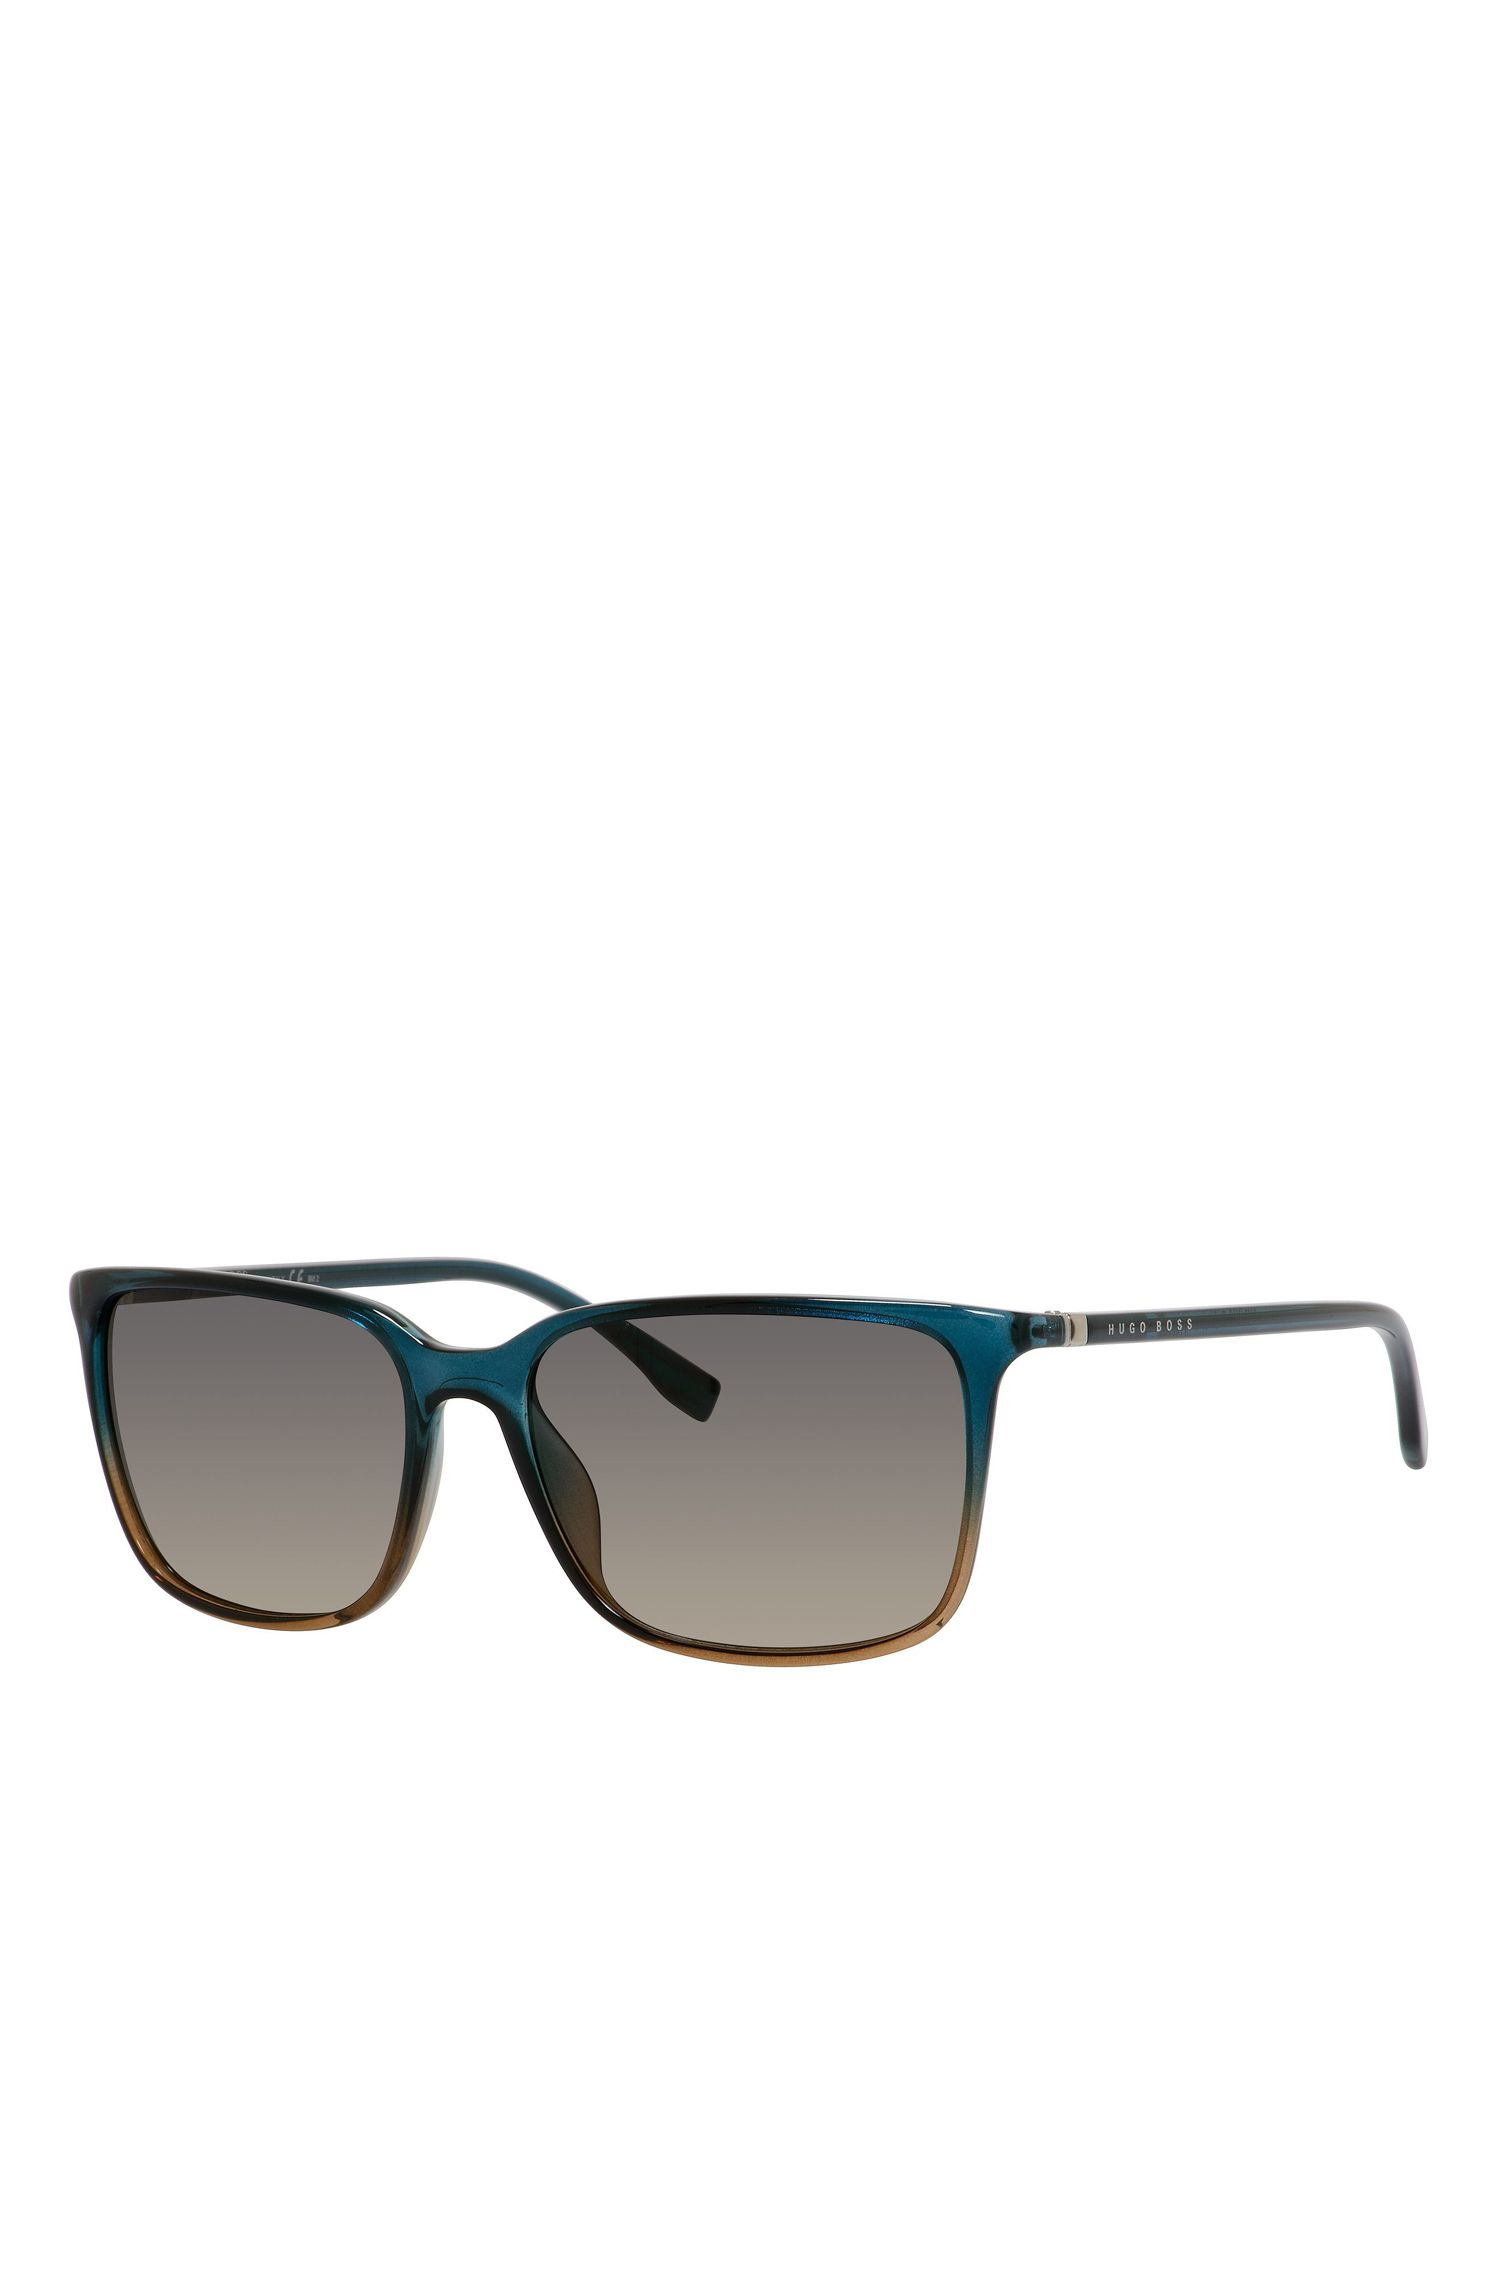 'BOSS 0666S' | Gradient Lens Rectangular Sunglasses